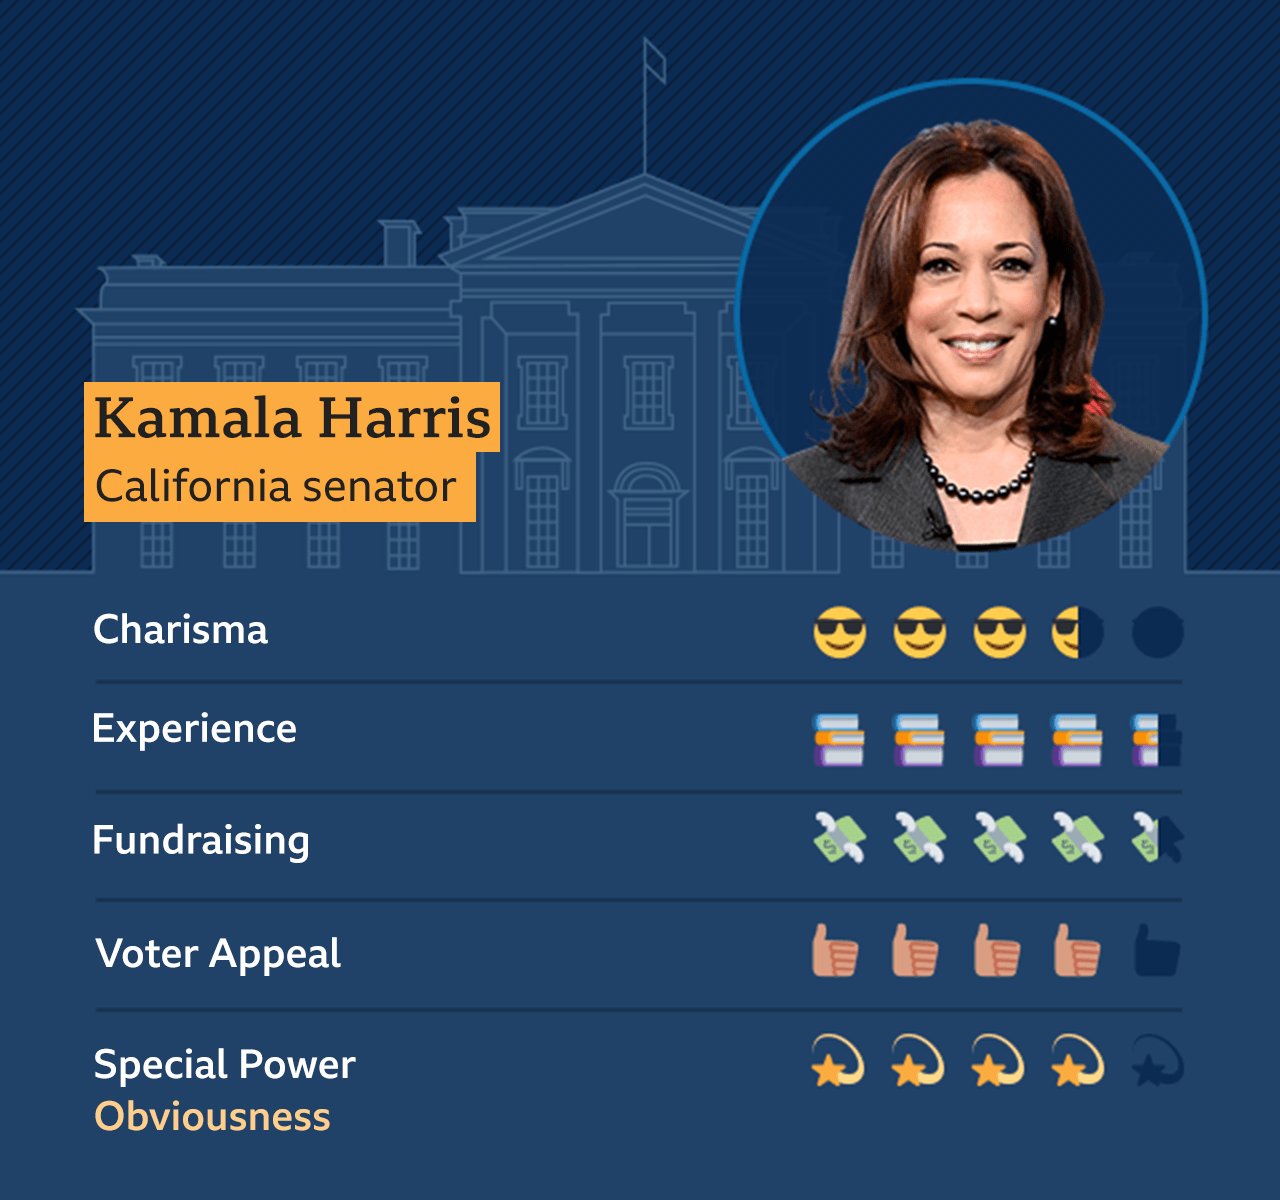 Graphic showing Kamala Harris, with the scores: Charisma, 3.5, Experience, 4.5, Fundraising, 4.5, Voter Power, 4, Special Power: Obivousness - 4